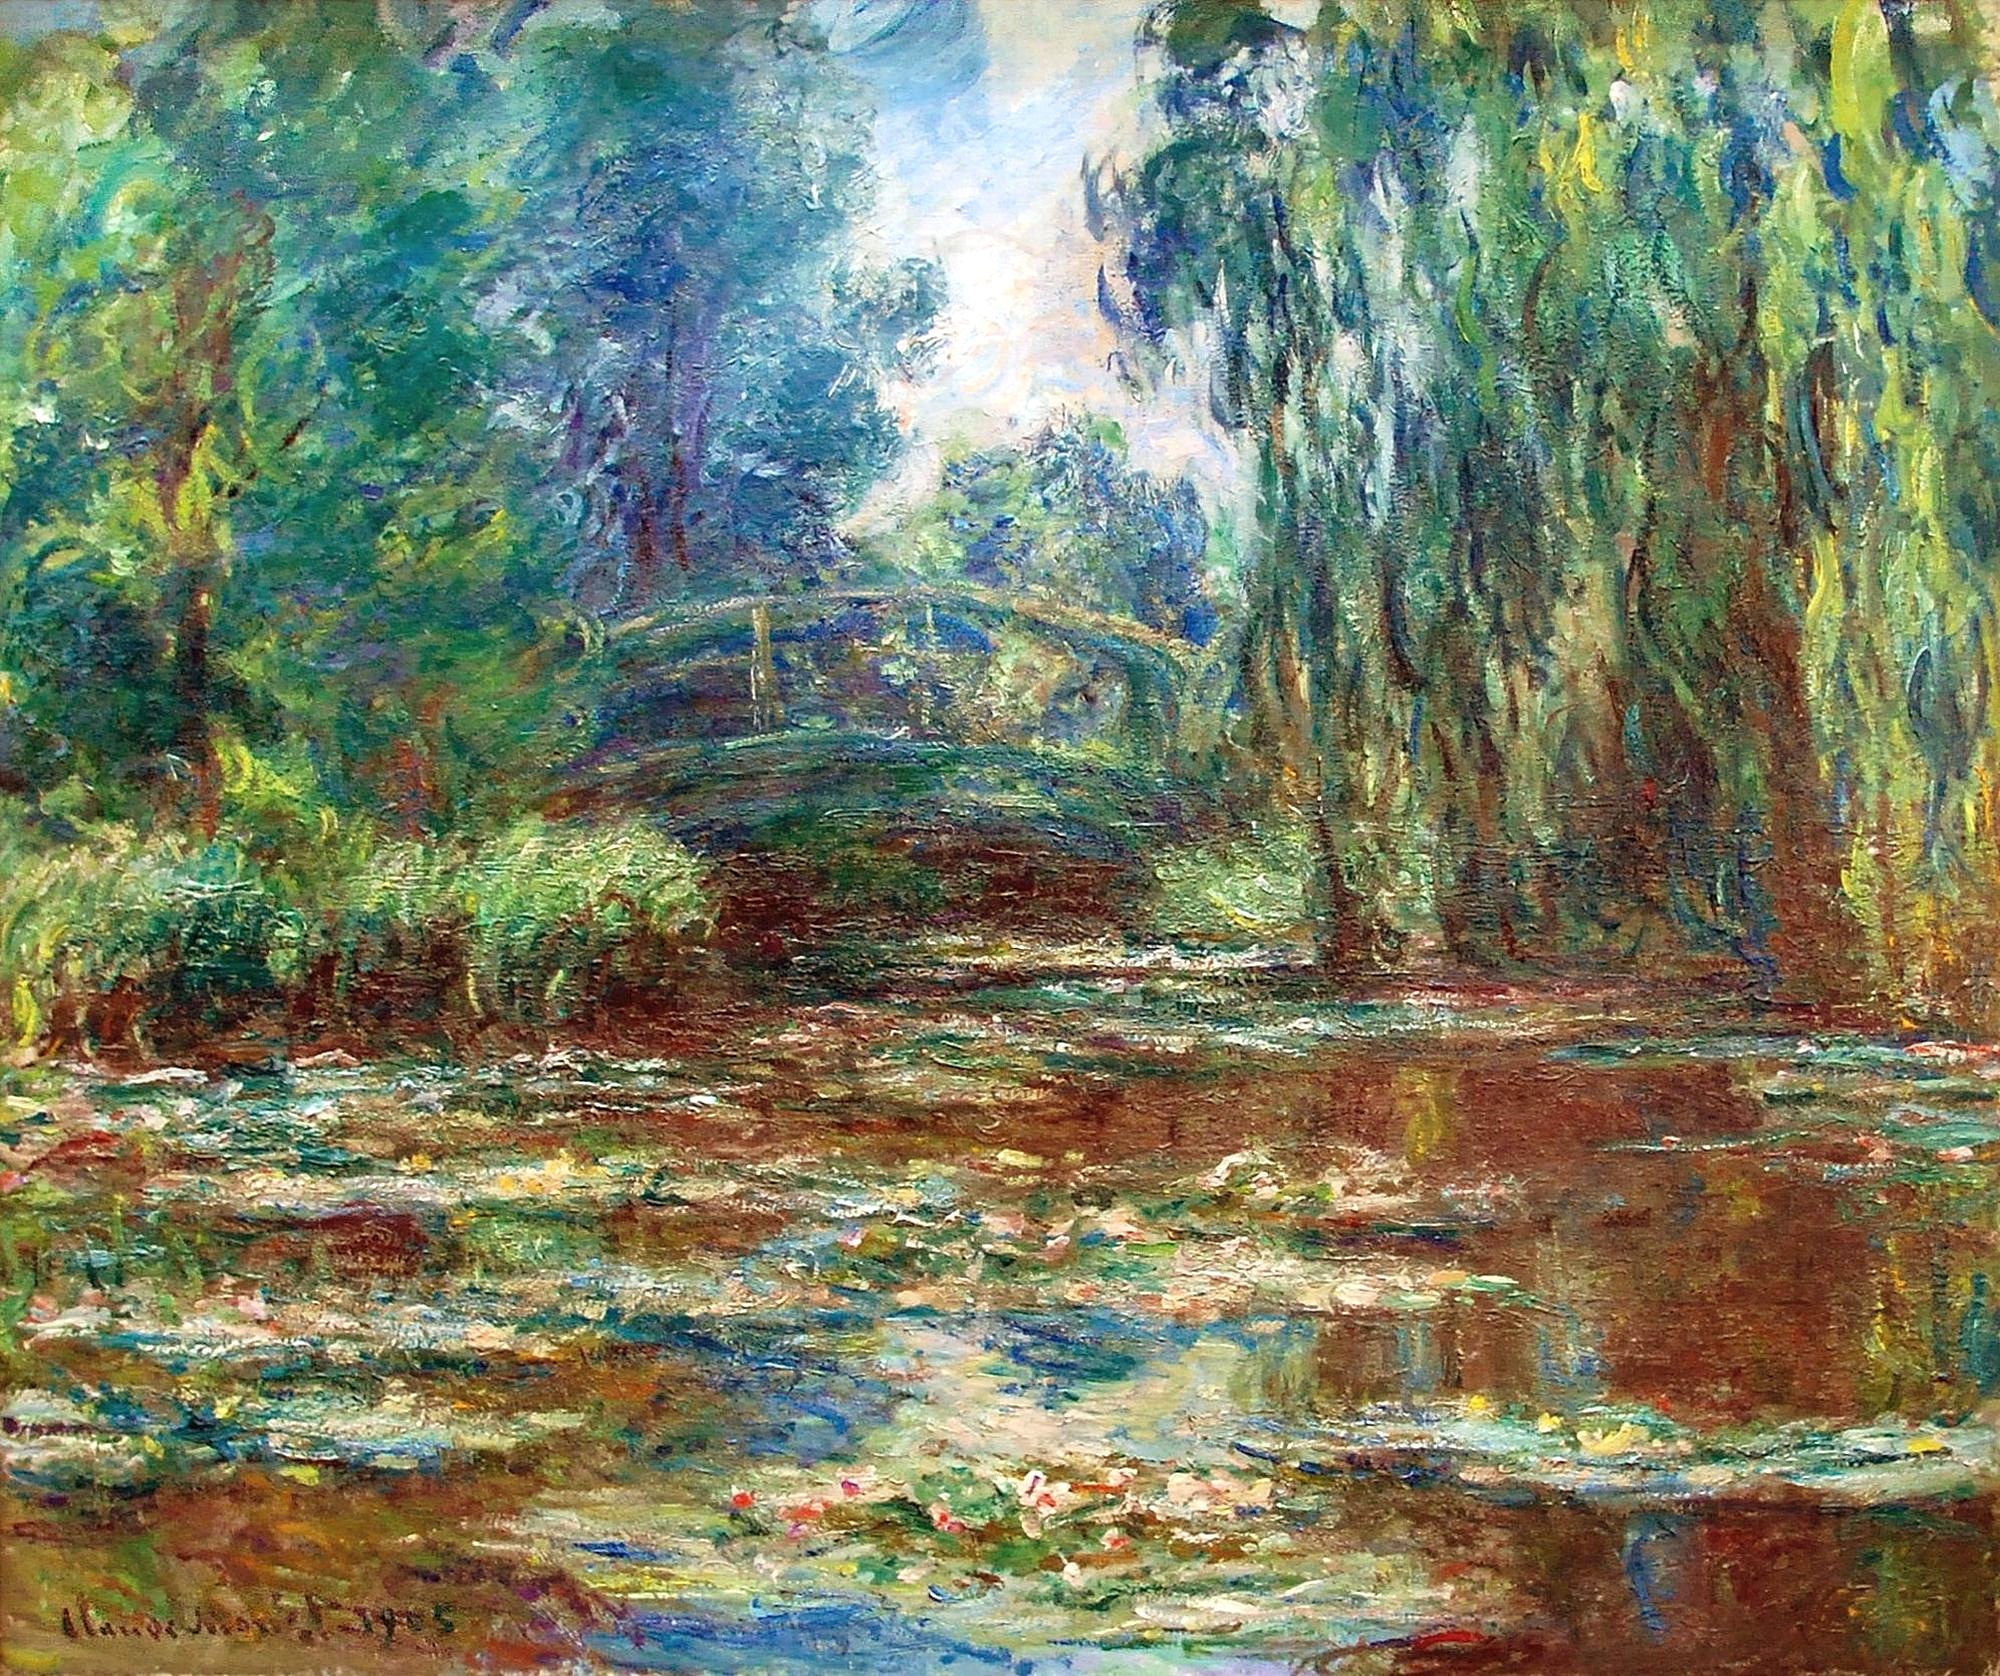 Water Lily Pond and Bridge, 1905 - Claude Monet - WikiArt.org